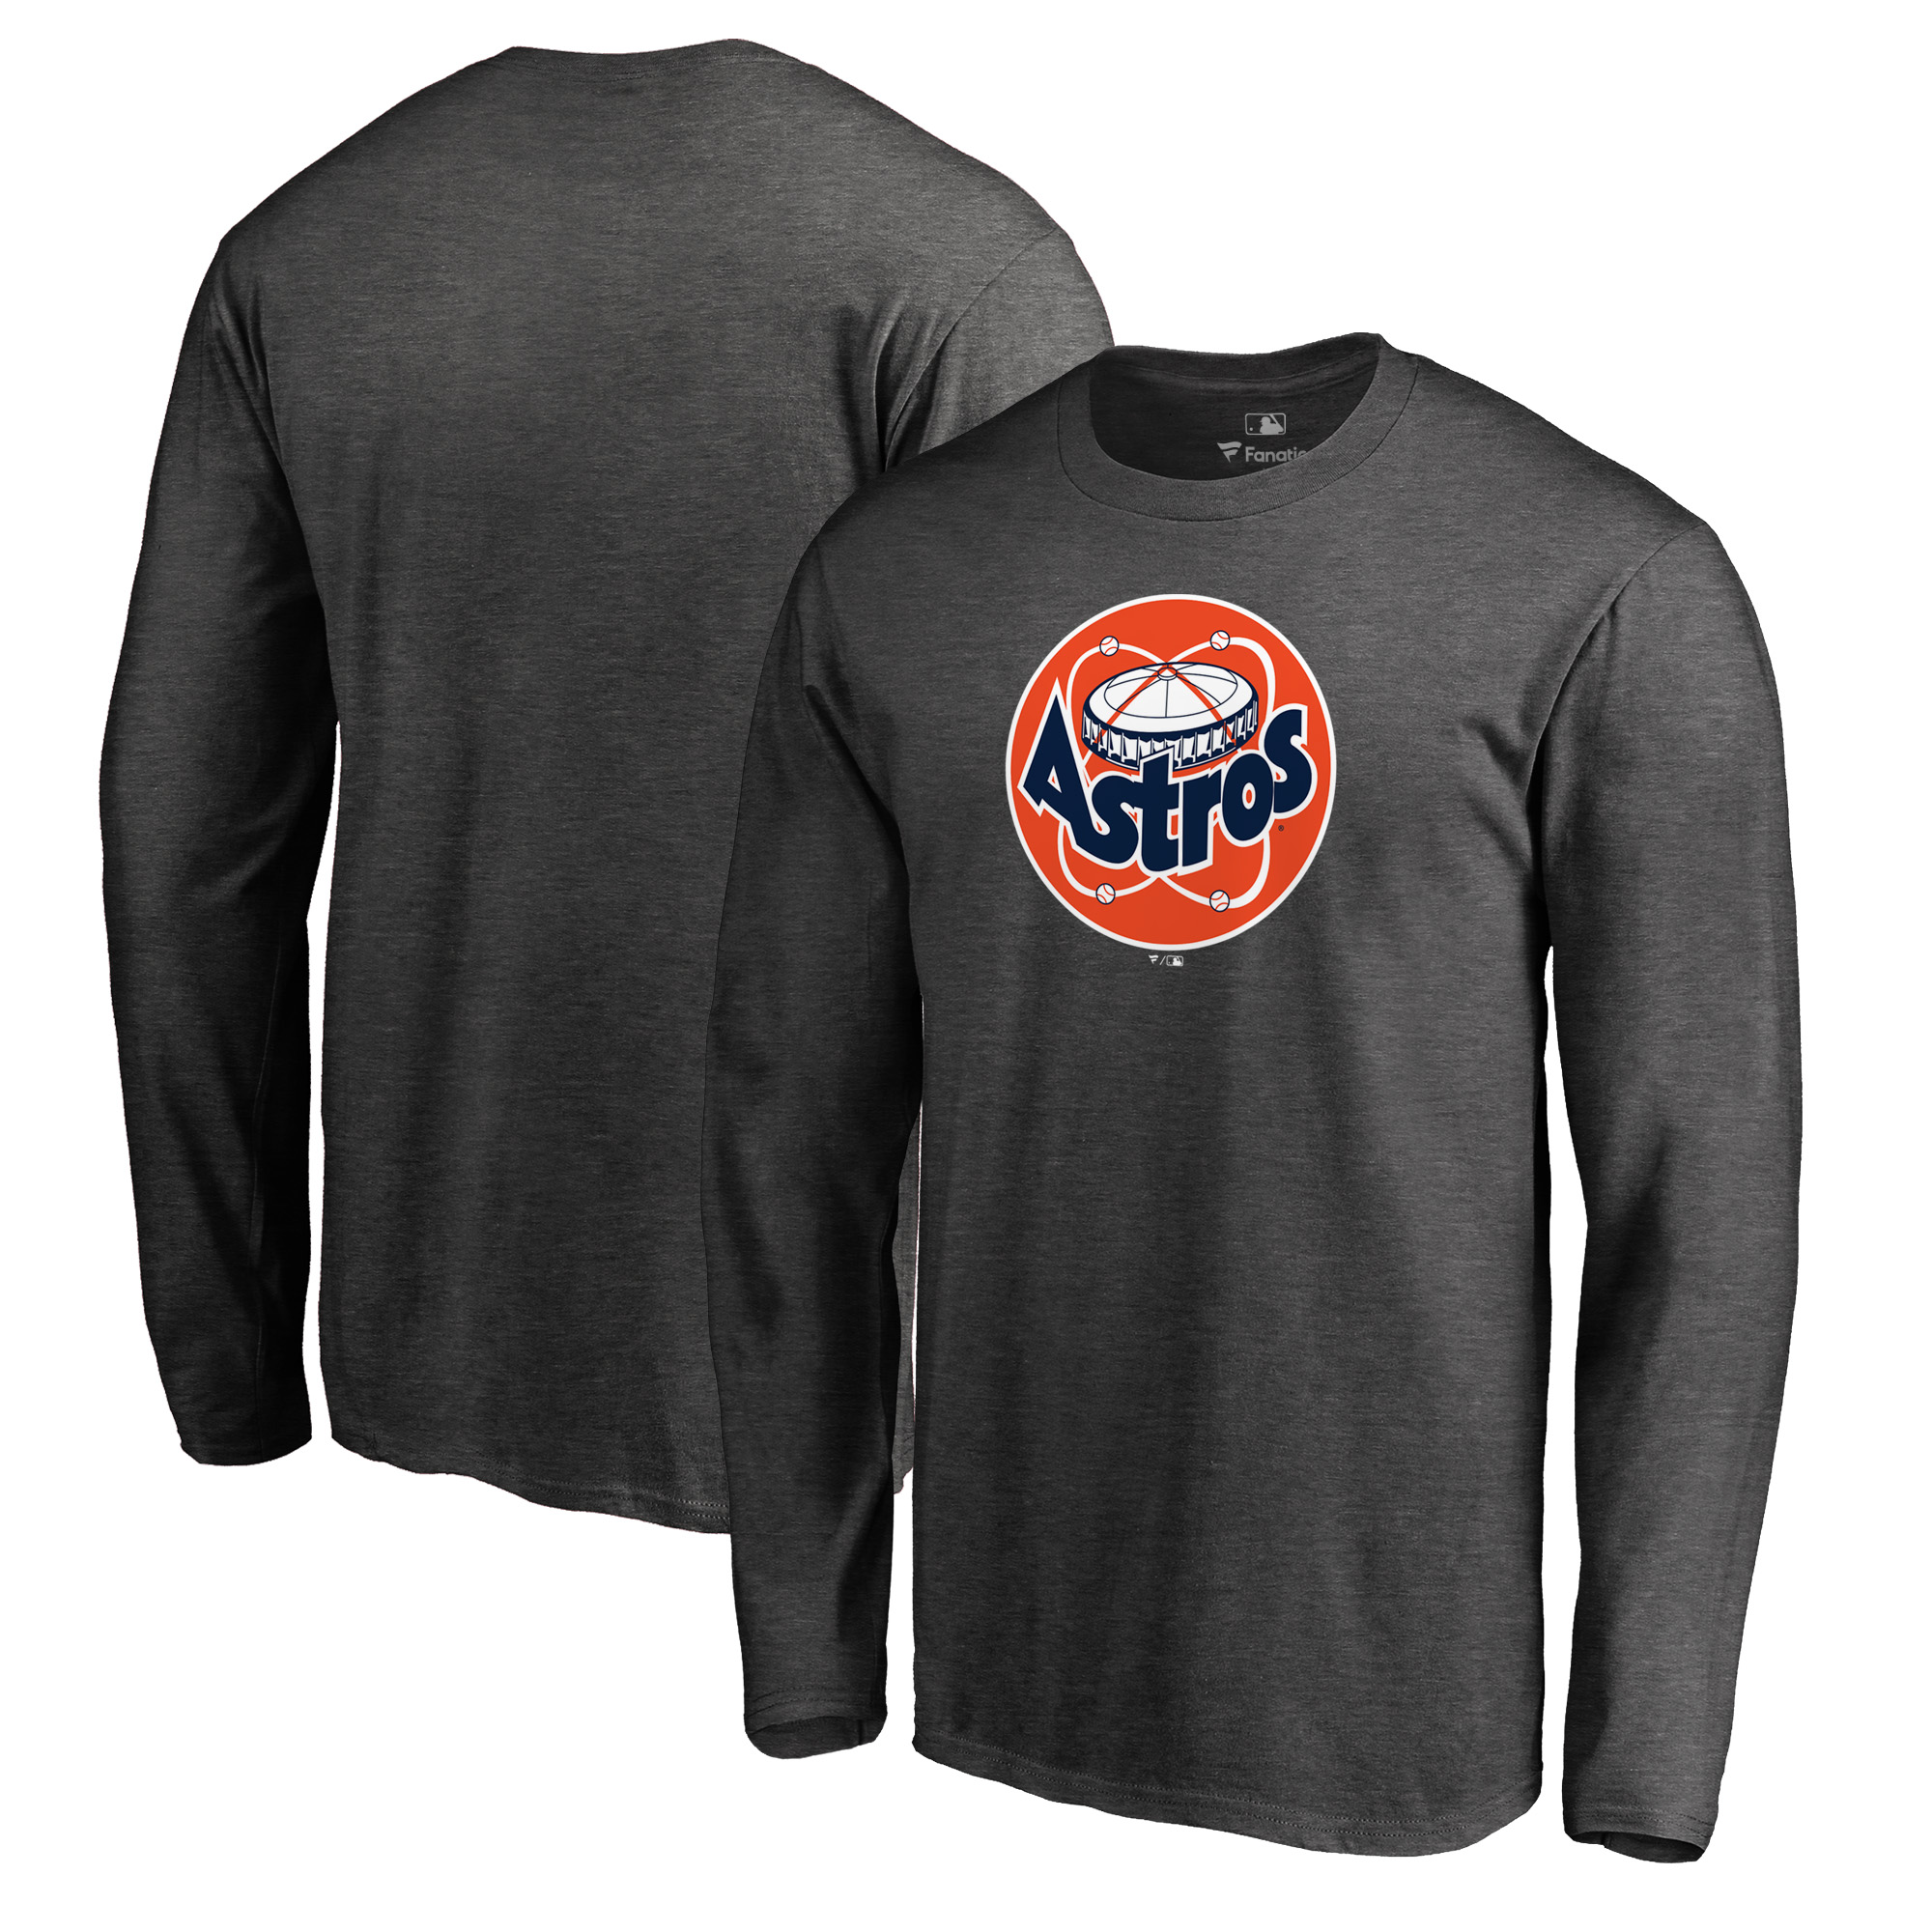 Houston Astros Fanatics Branded Cooperstown Collection Huntington Long Sleeve T-Shirt - Heathered Gray